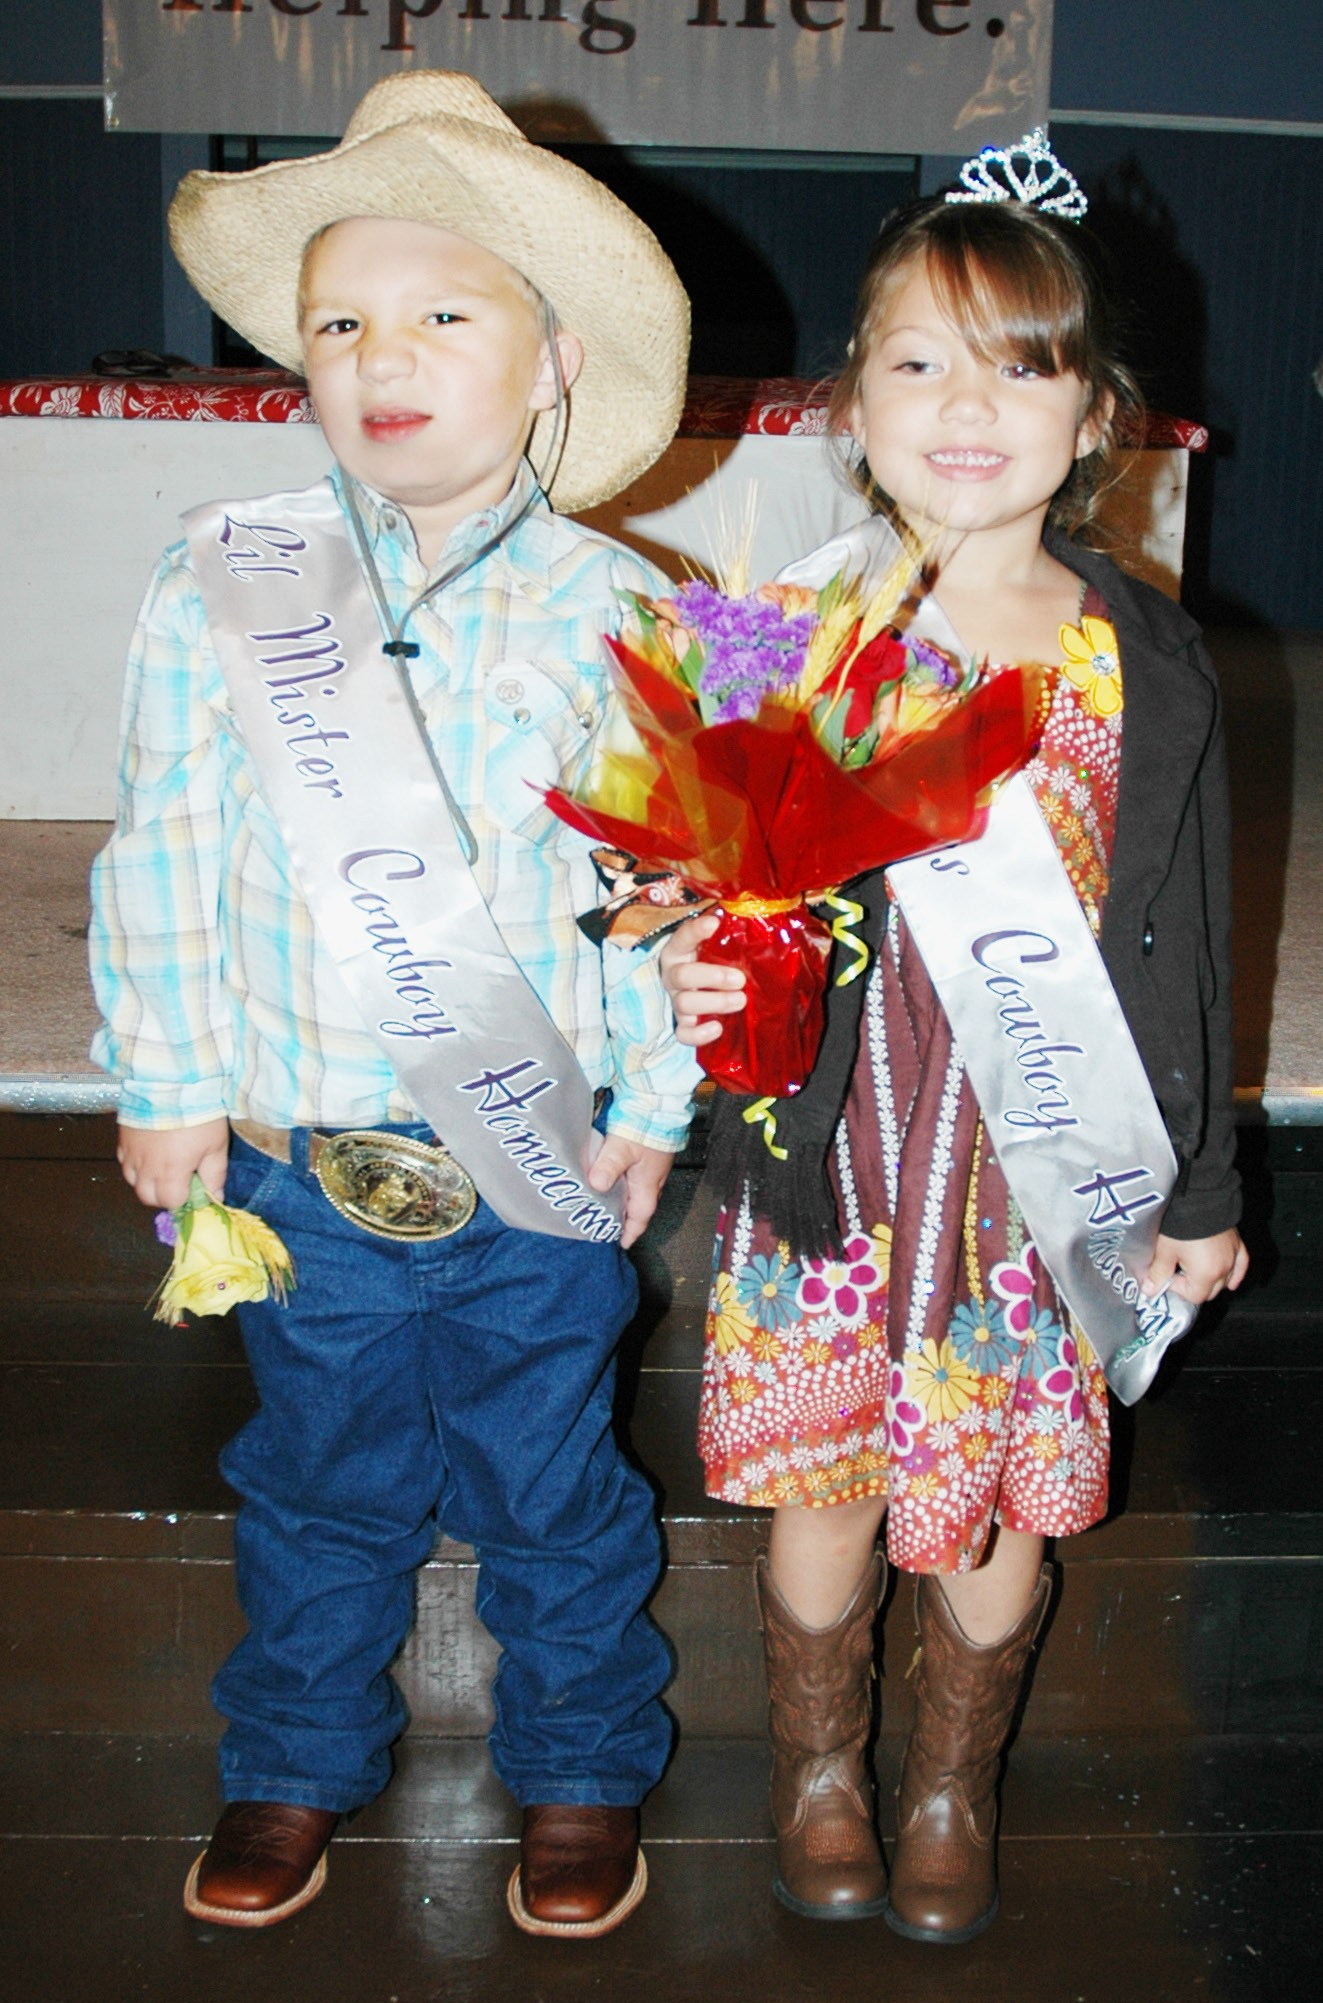 Lil' Mr. & Miss Cowboy Homecoming Killian Kaiser and Laney Aguilar will help represent Pleasanton during the the 48th Annual Cowboy Homecoming Festival October 25-26.